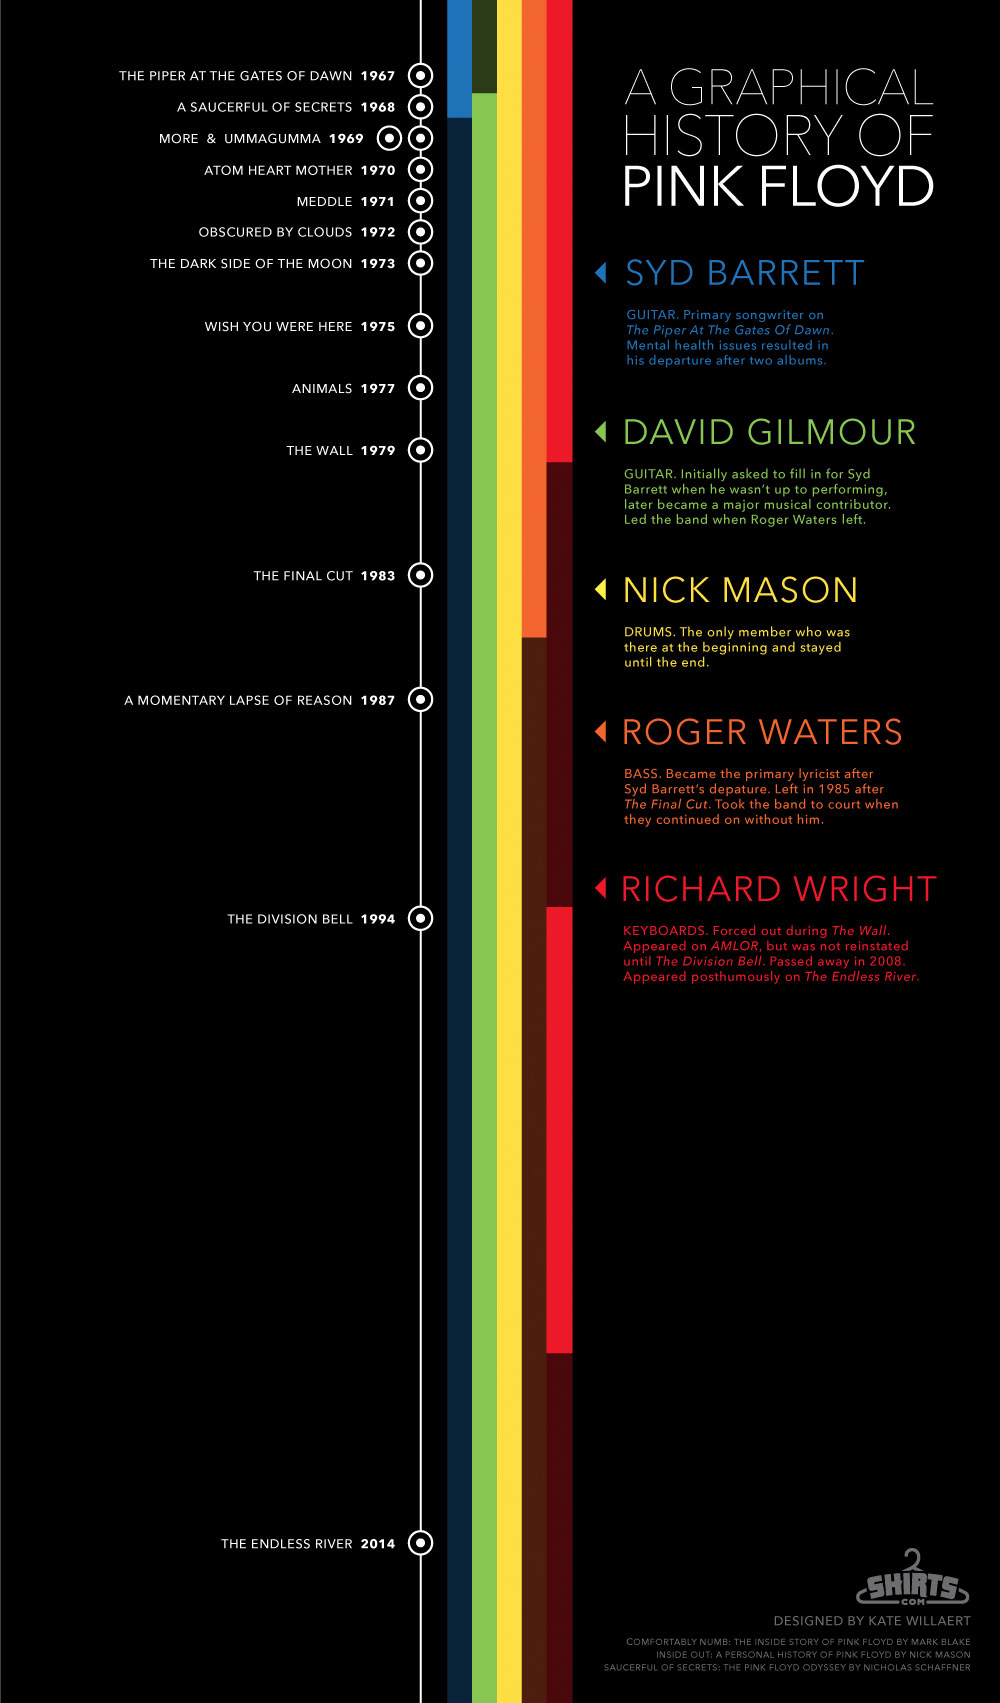 A Graphical History of Pink Floyd